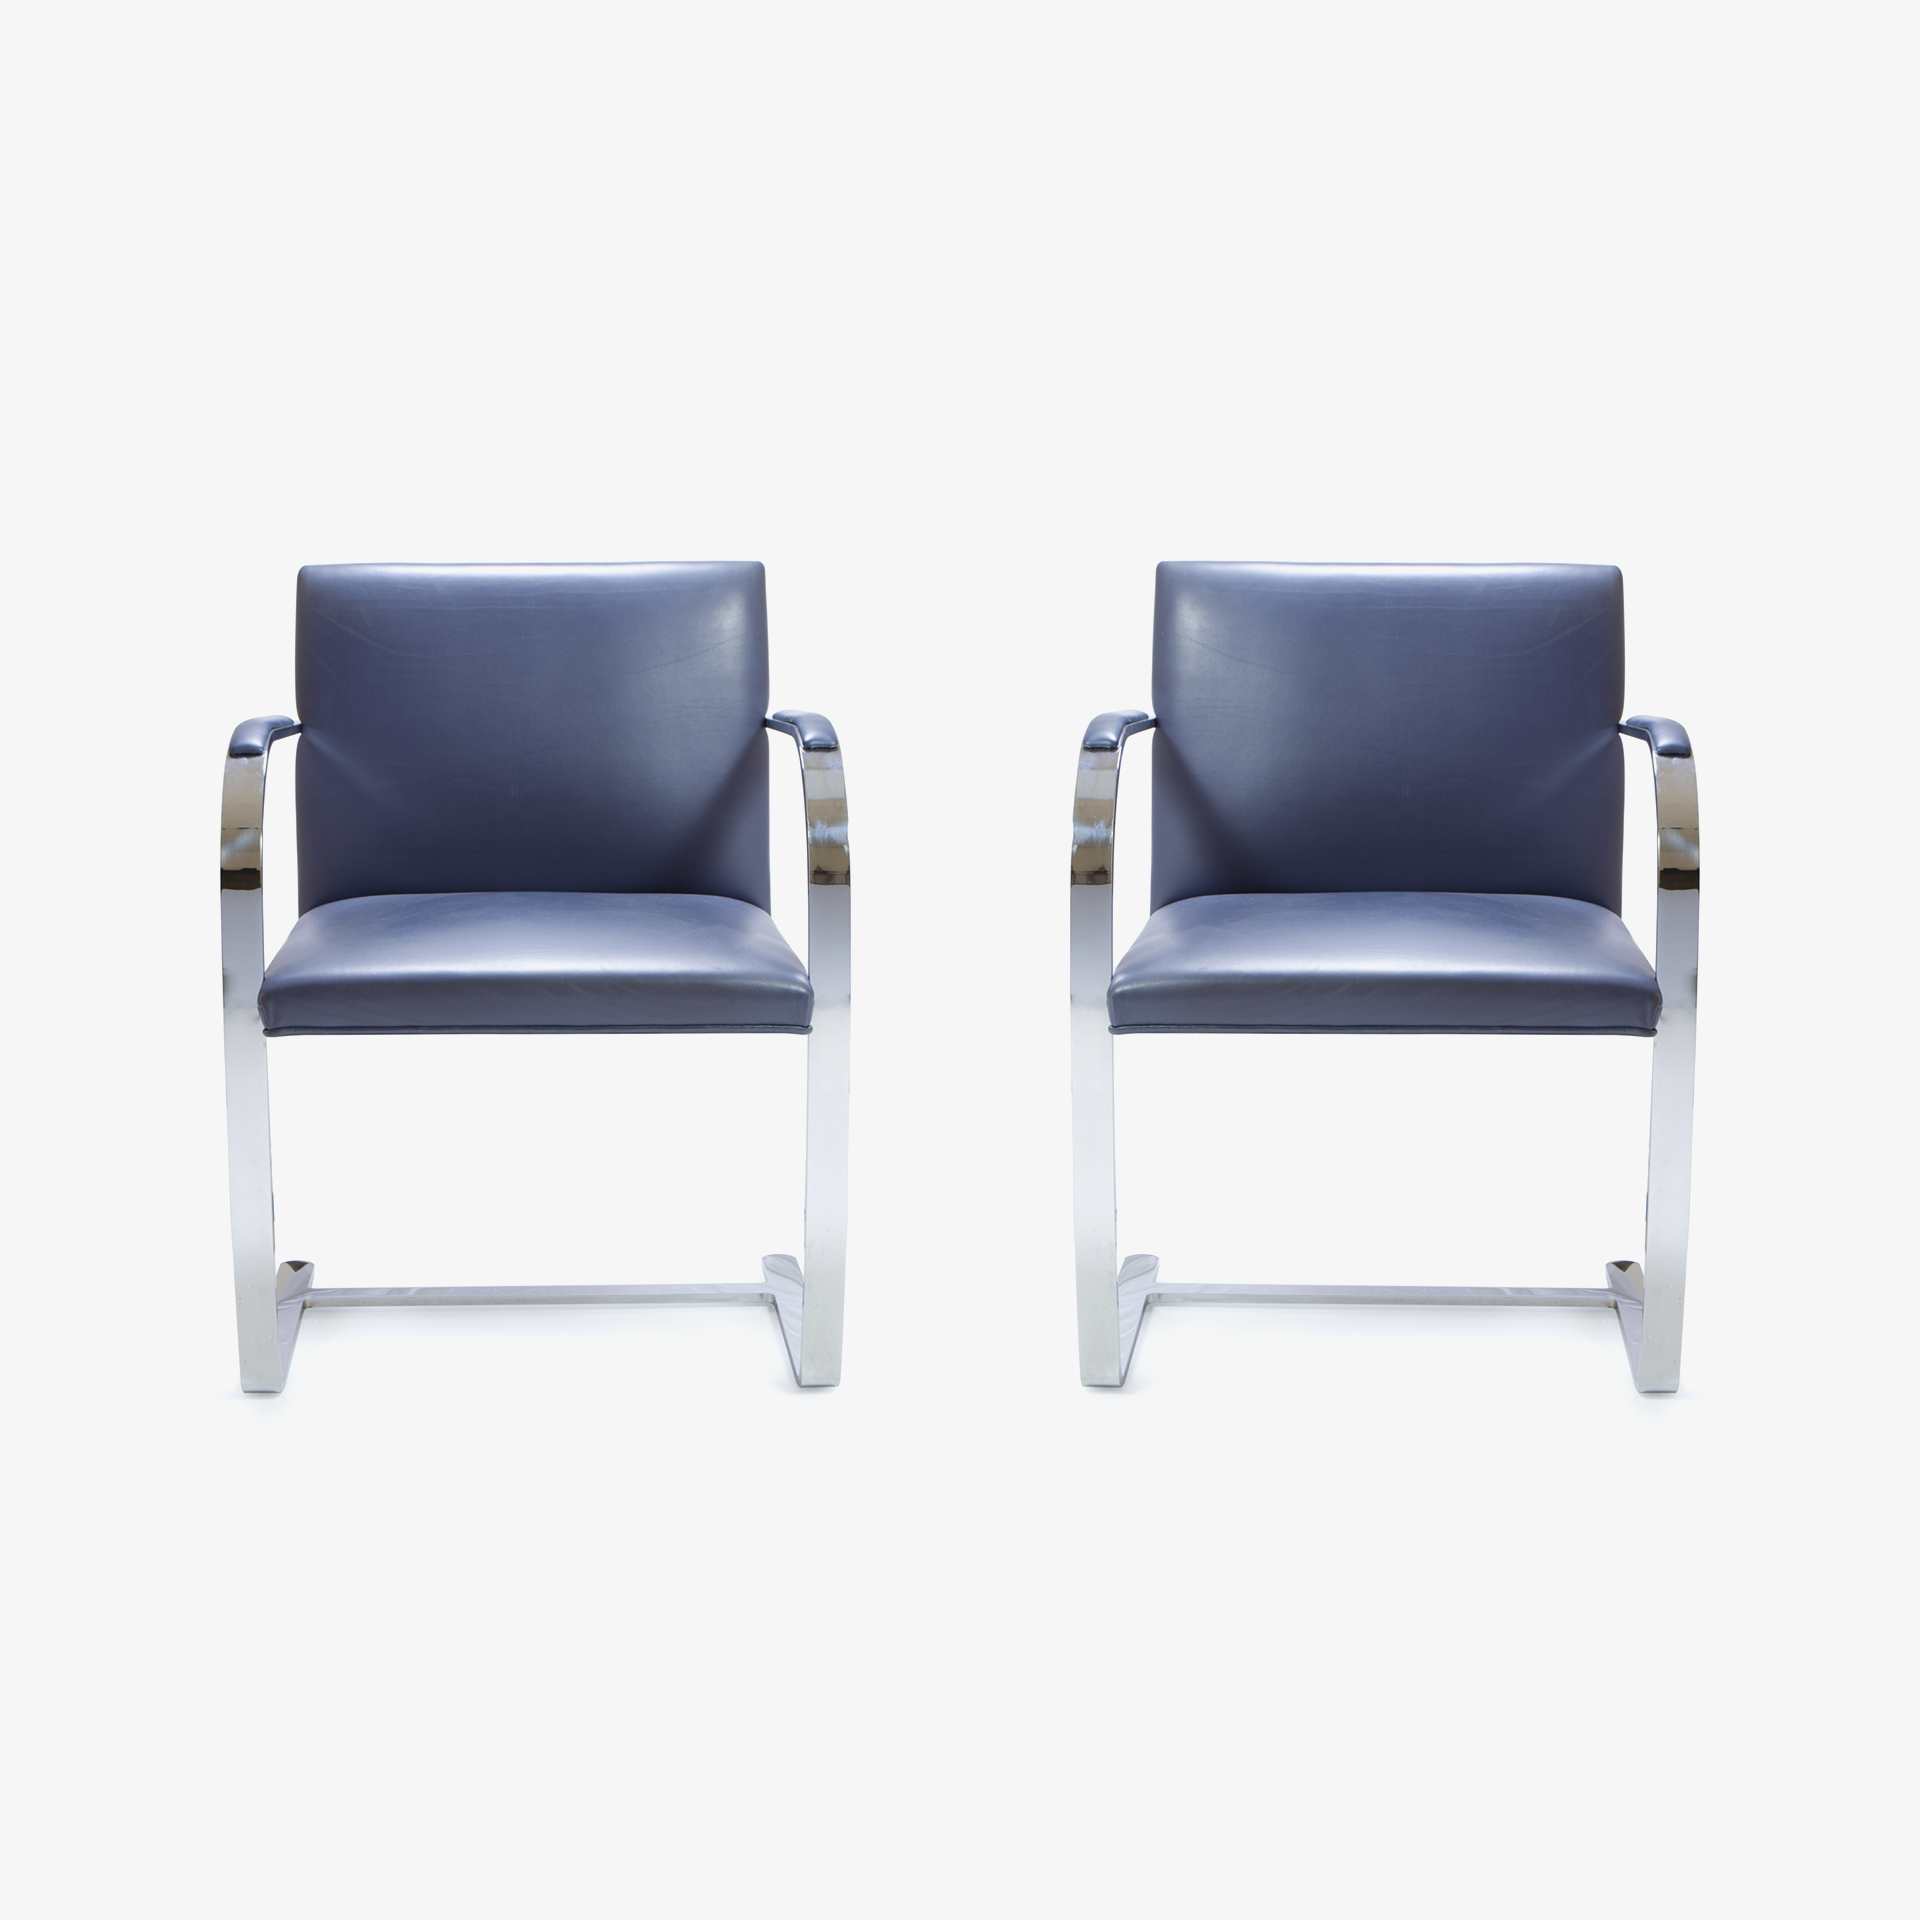 Brno Chairs in Navy Leather2.jpg